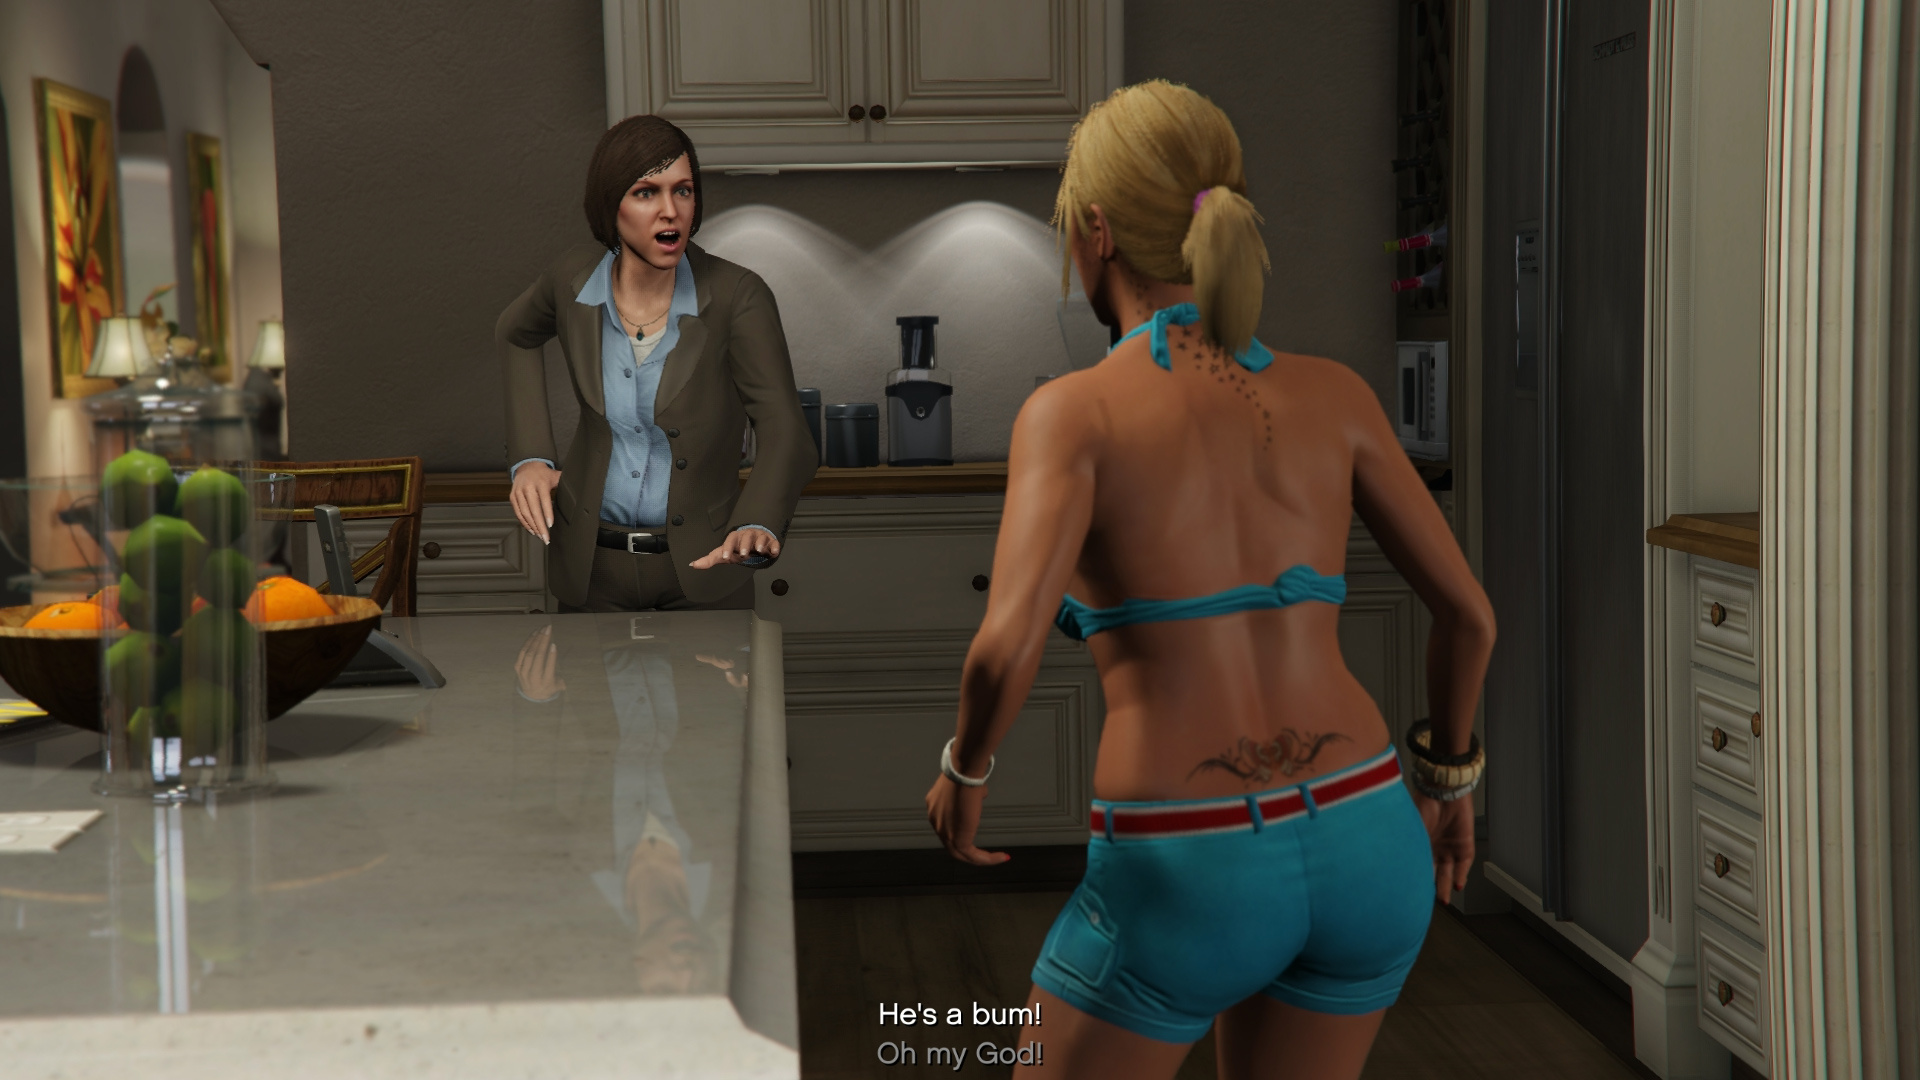 Grand theft auto v naked amanda sex scenes